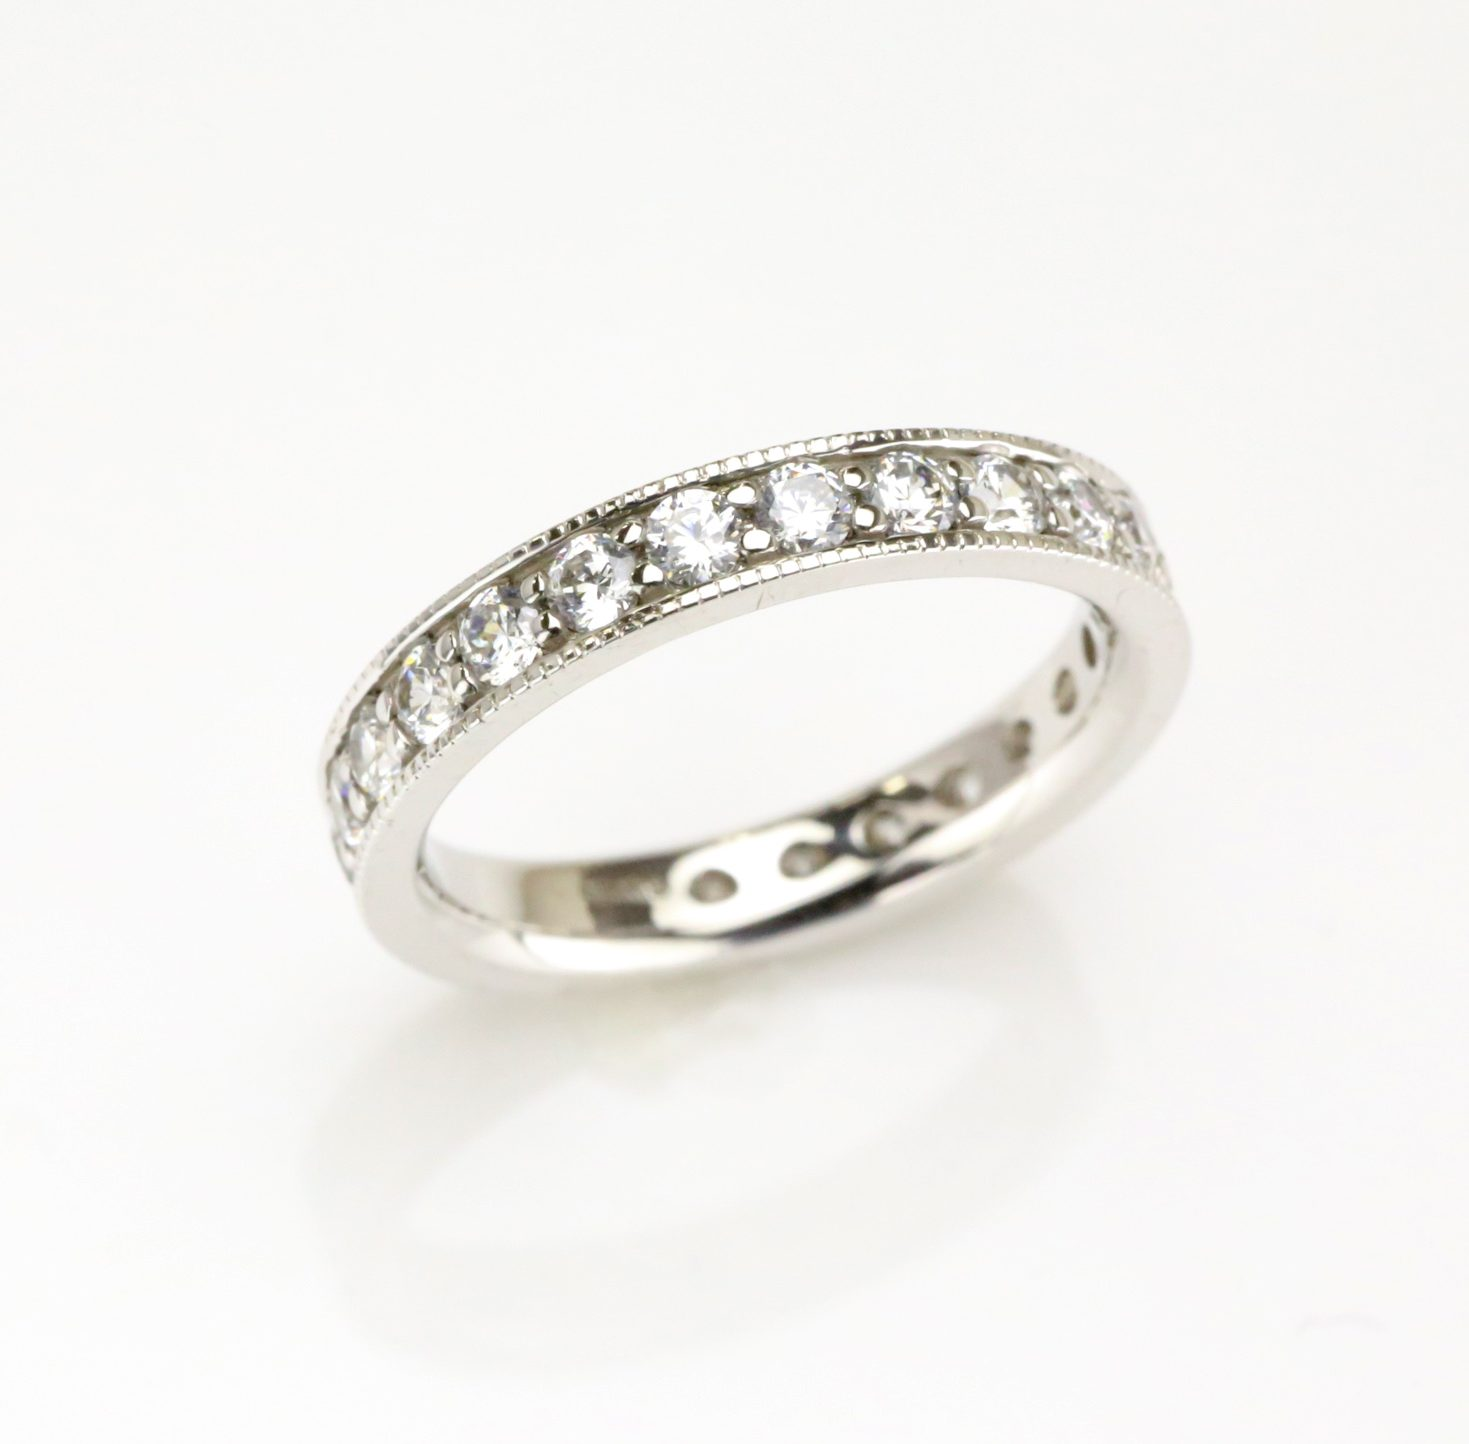 MARRIAGE RING 12